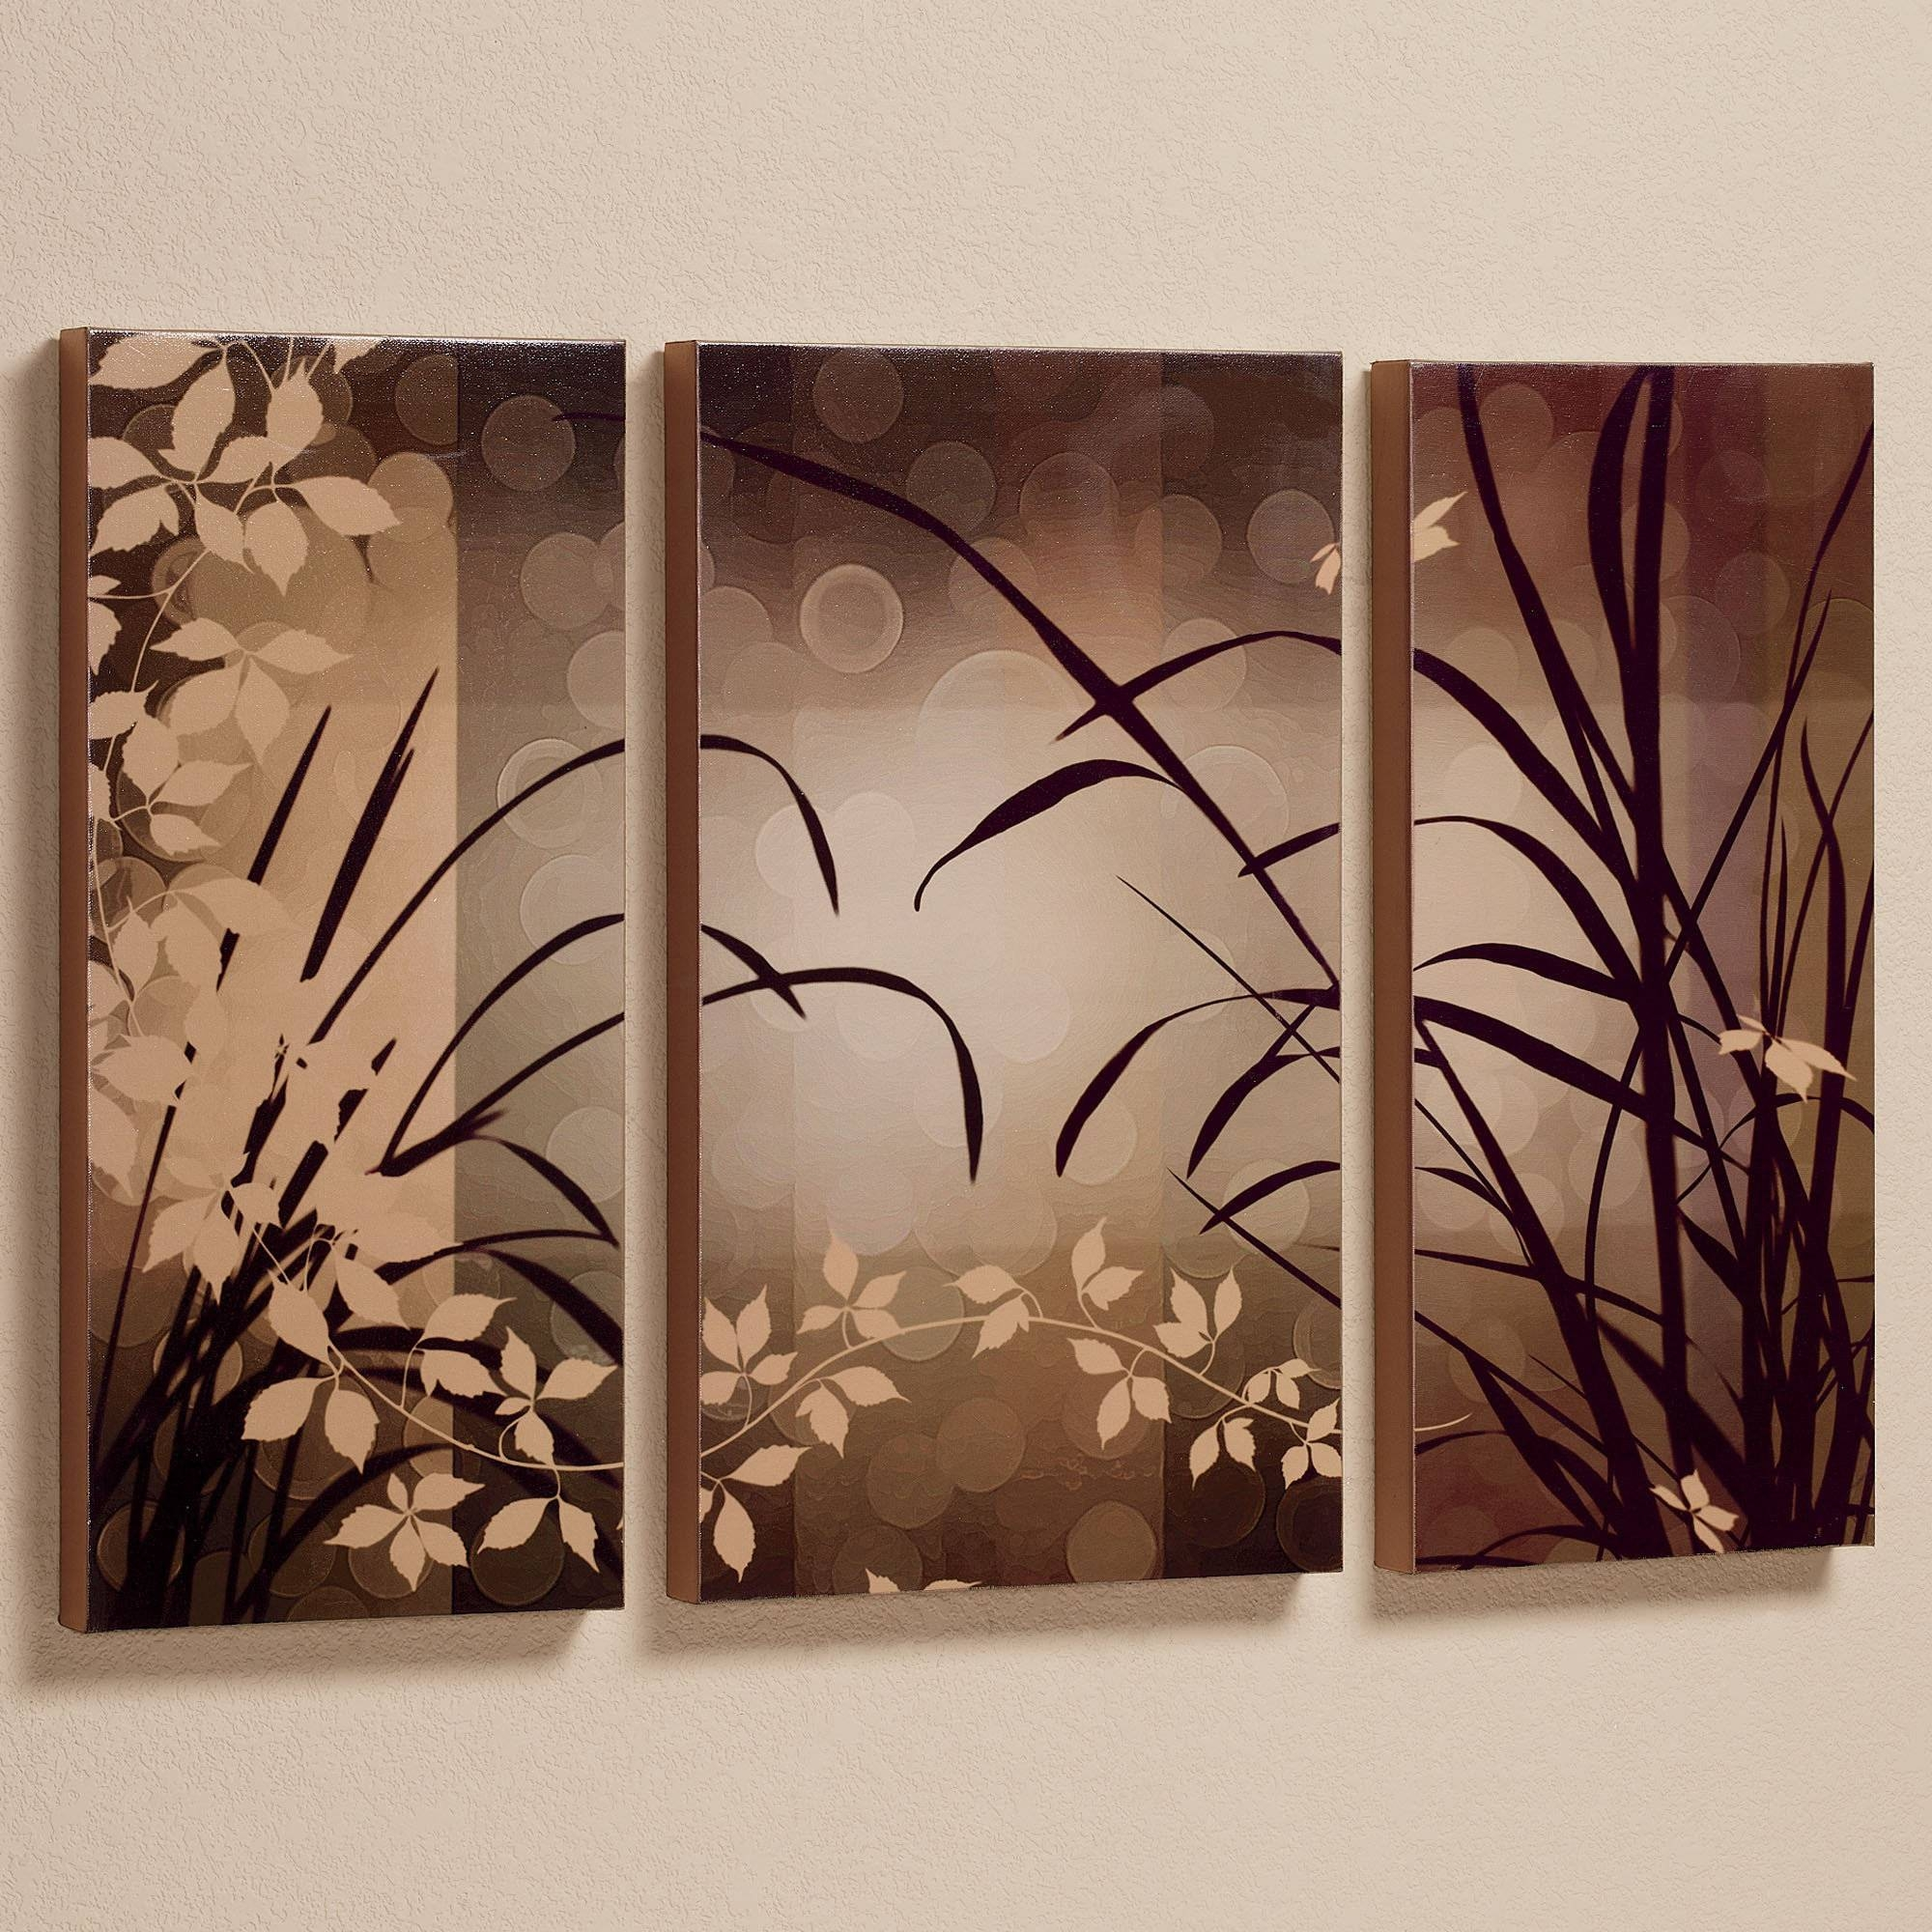 Wall Art Designs: Canvas Wall Art Elegance Wall Art Canvas Throughout Most Popular Big Canvas Wall Art (View 19 of 20)